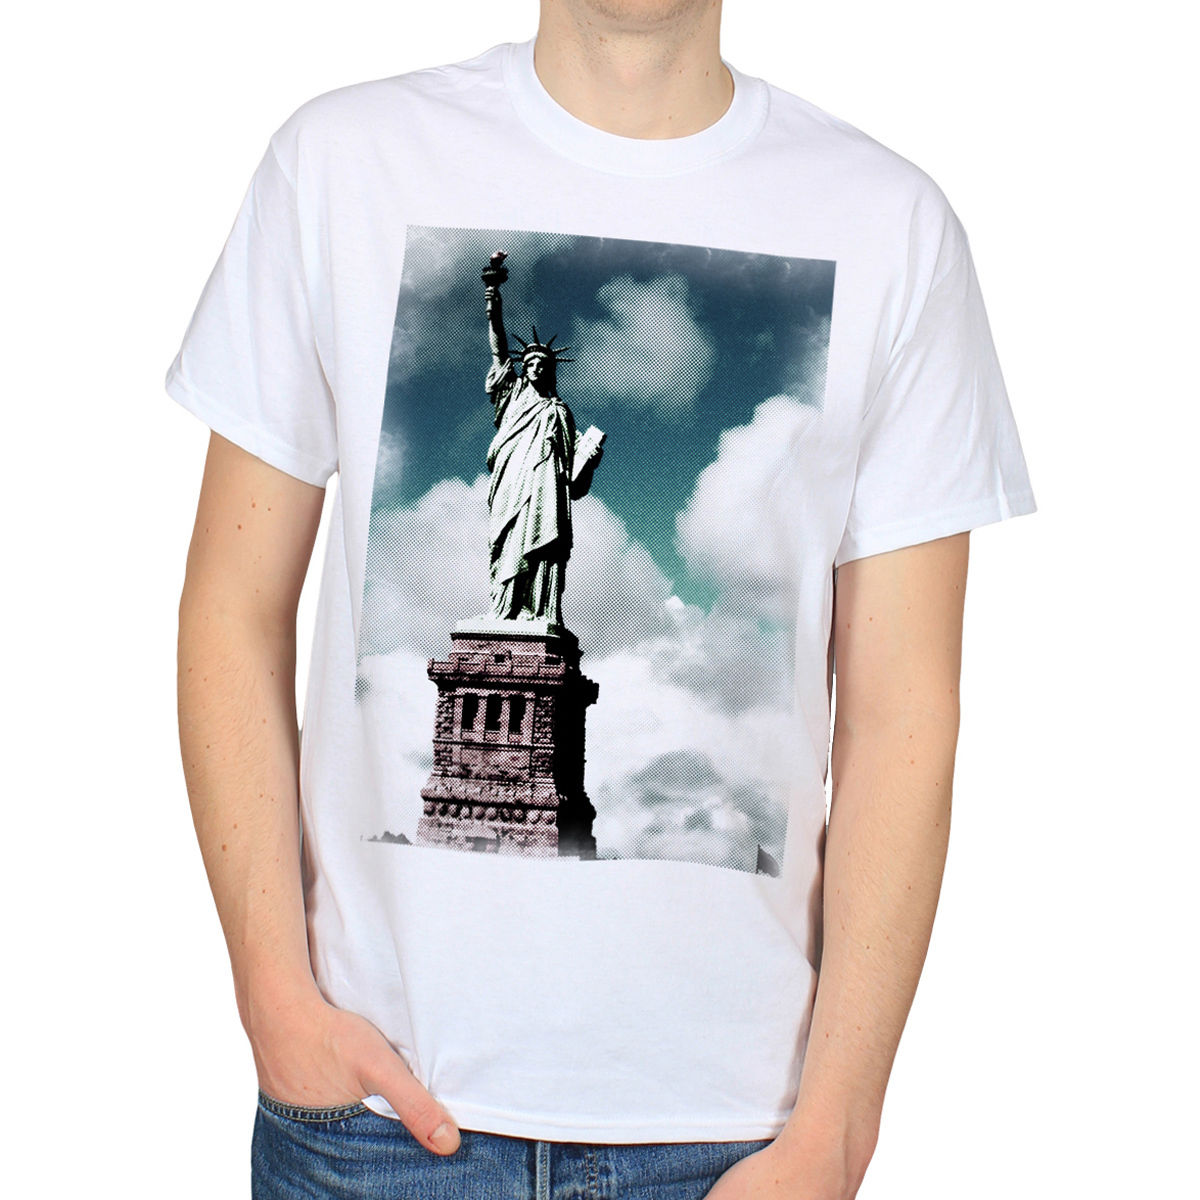 STATUE OF LIBERTY NEW YORK CITY NYC AMERICA USA ART MENS WHITE T-SHIRT TEE [T84] Male Best Selling T Shirts image